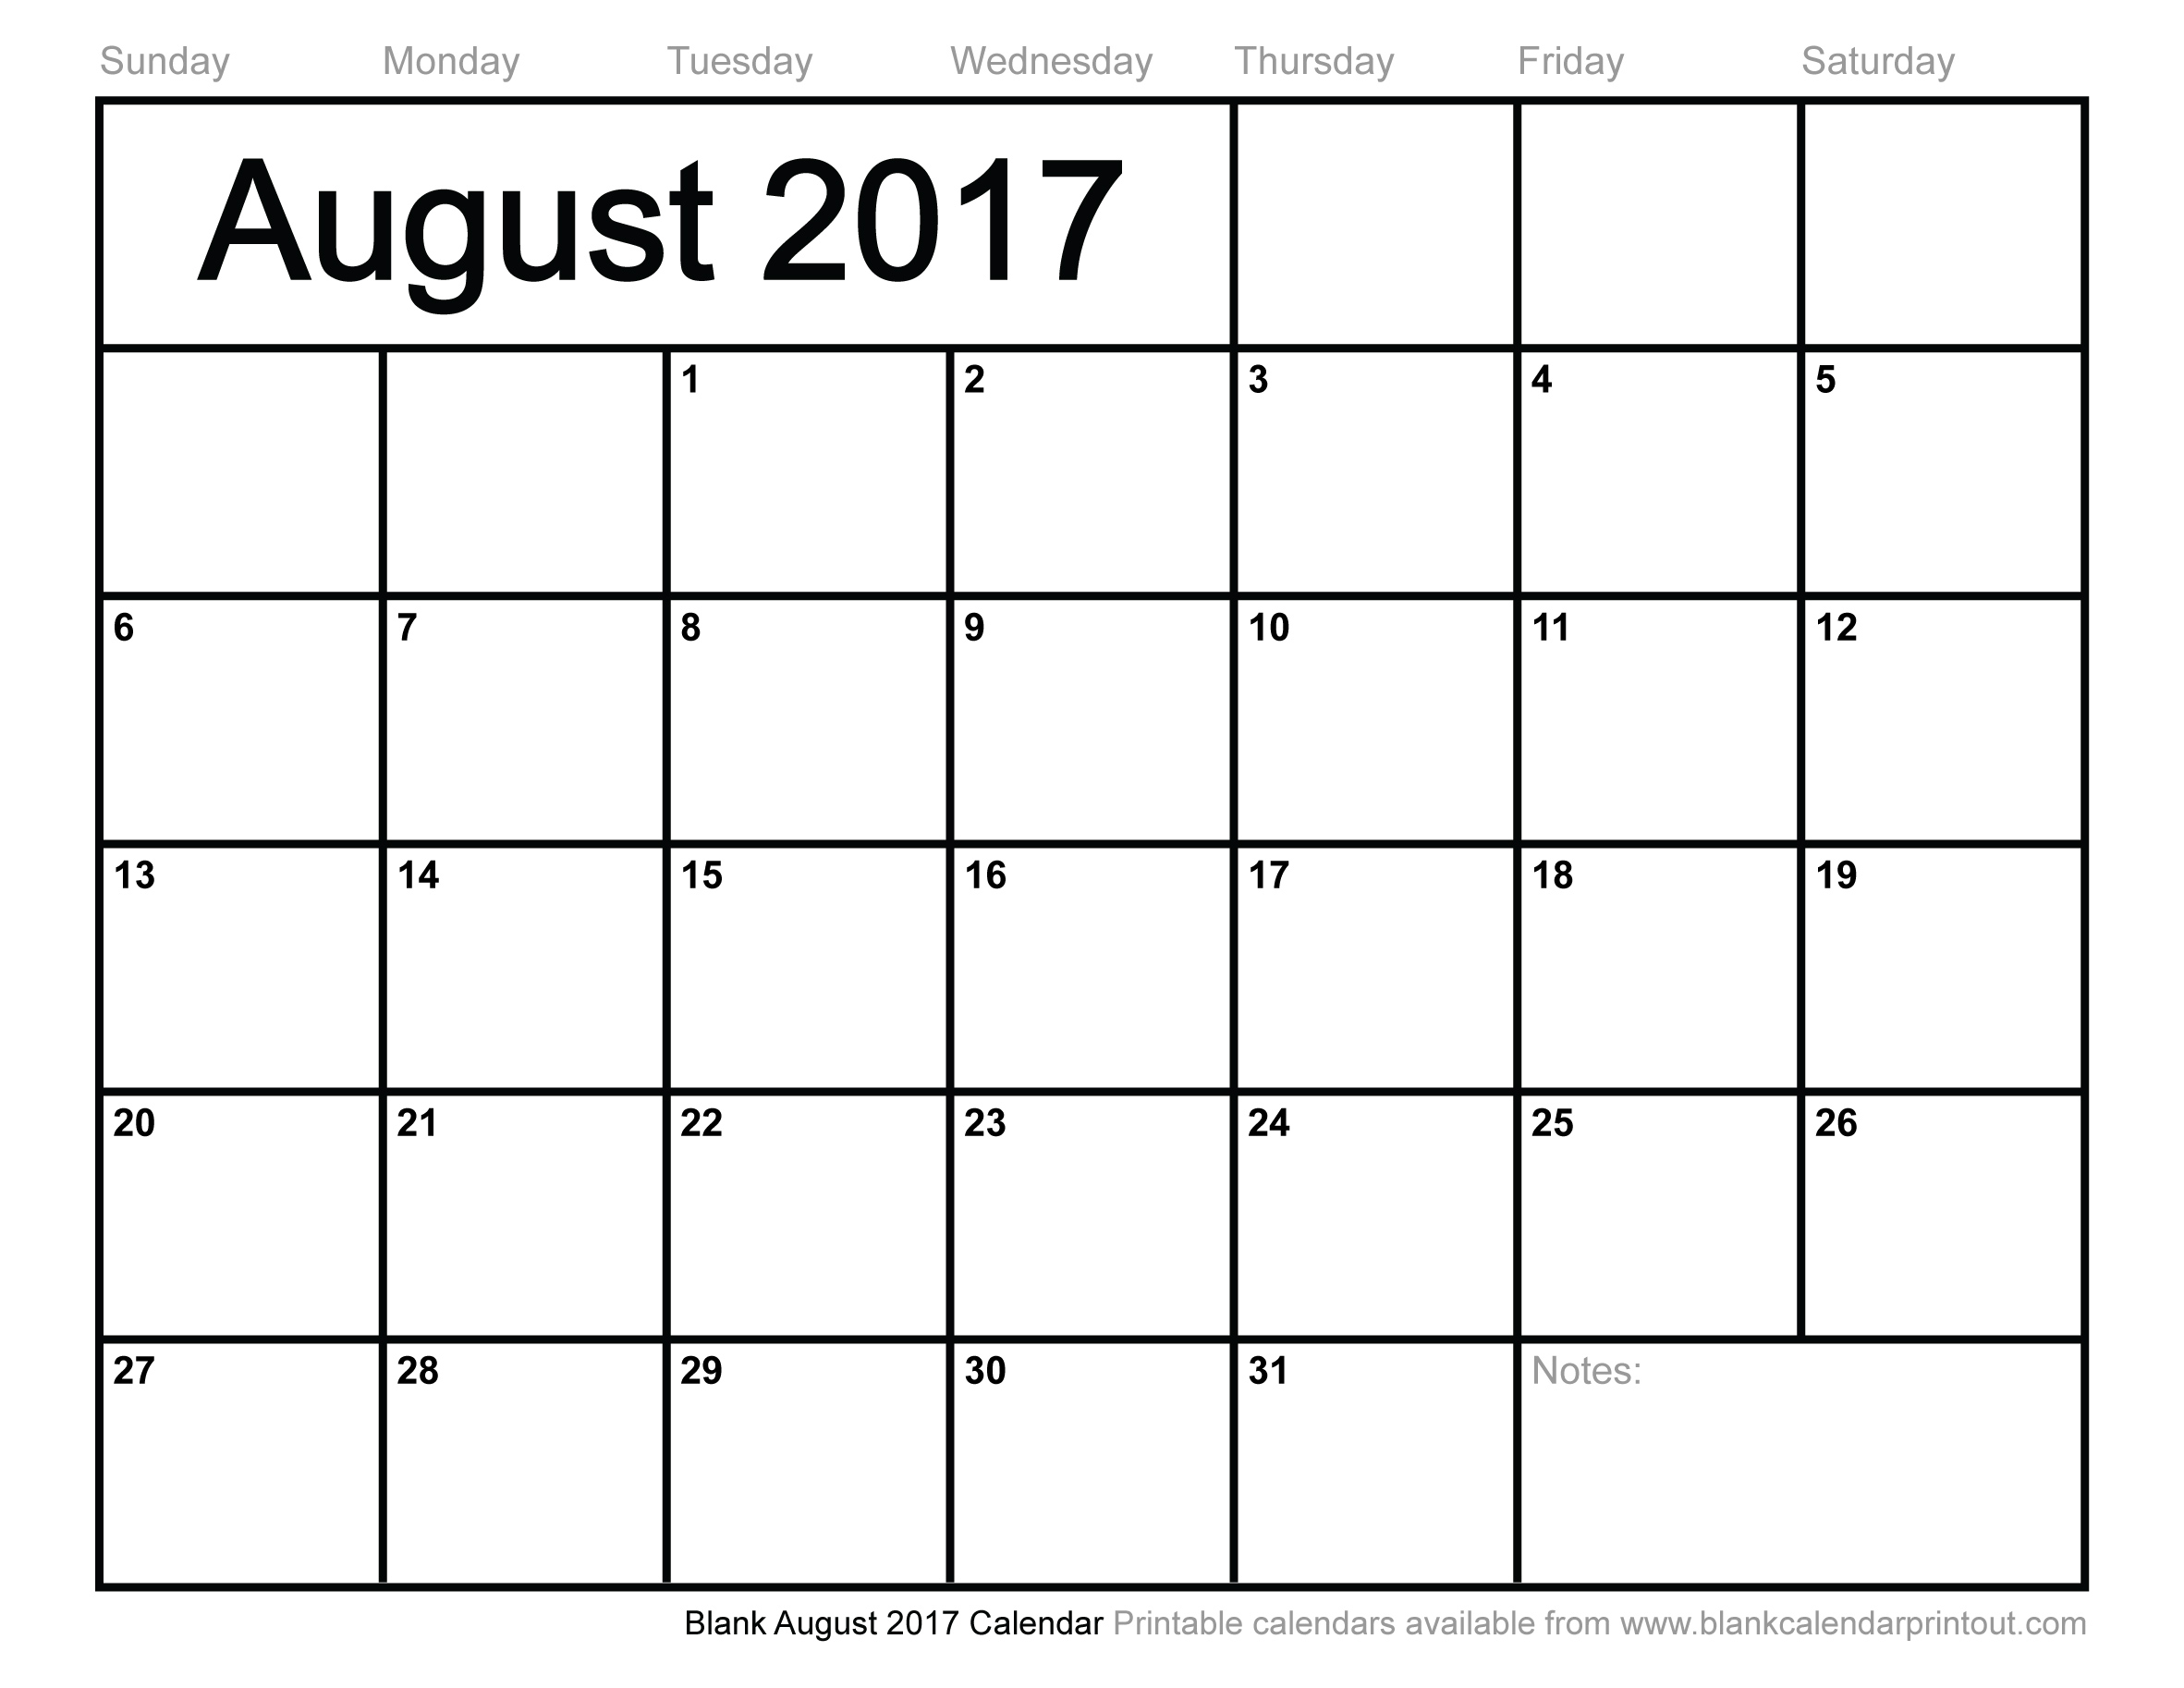 Blank August 2017 Calendar To Print for Blank Calender Of August